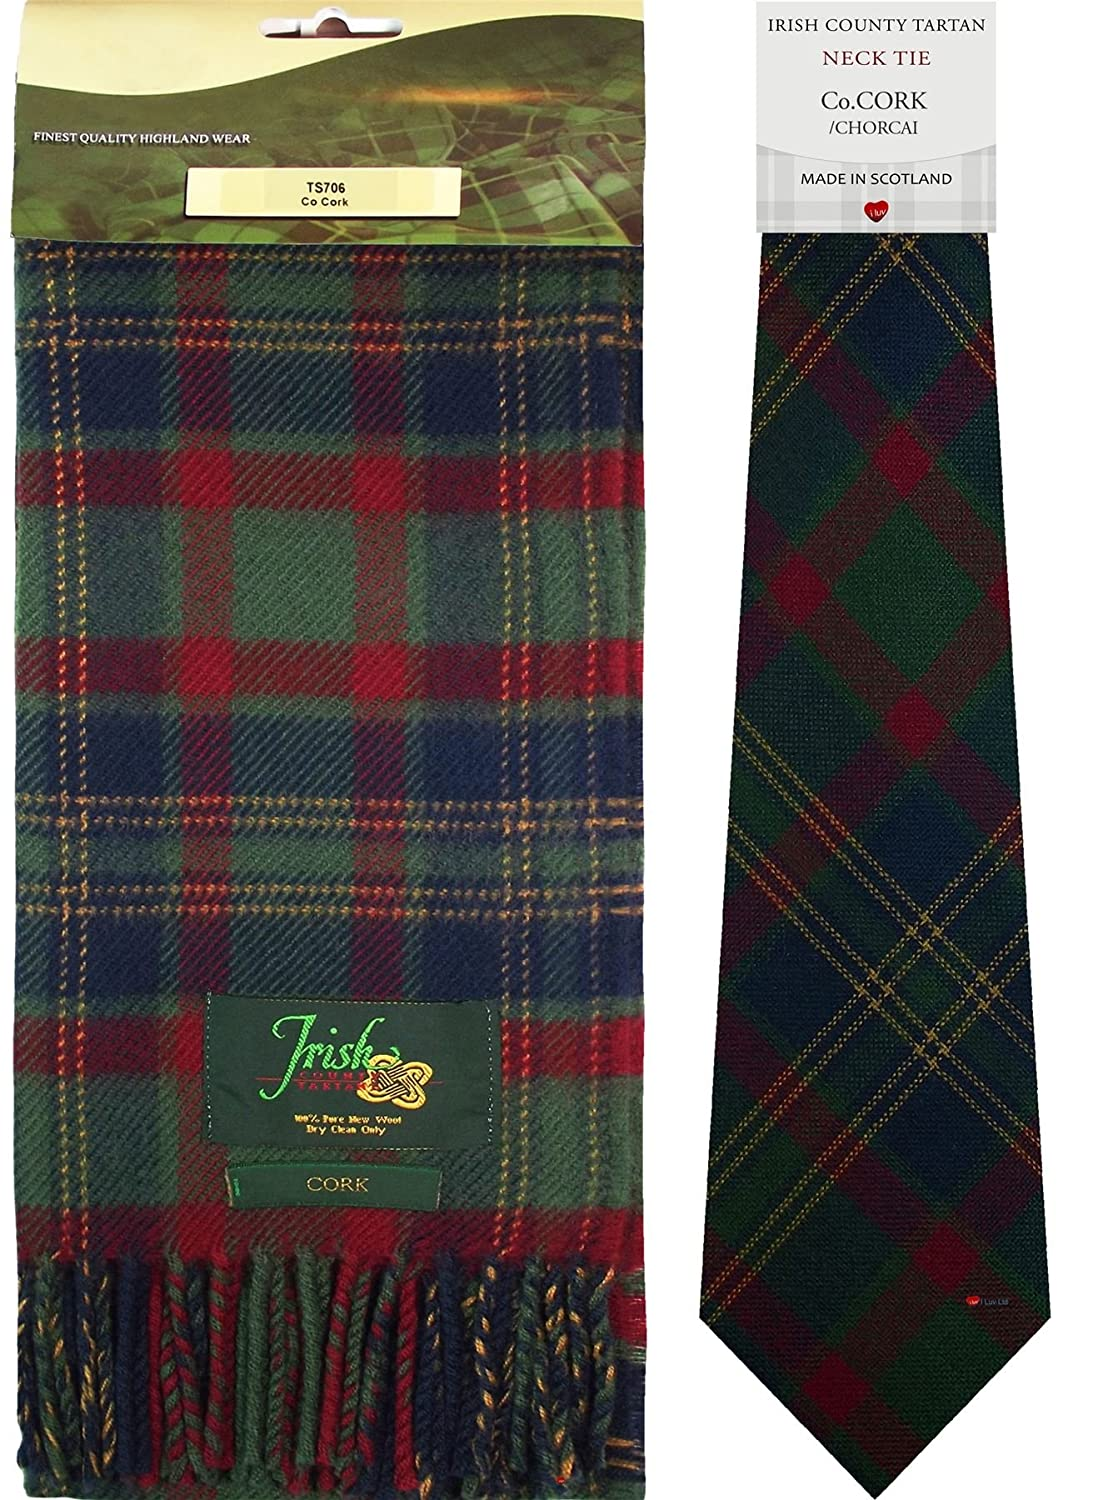 Co Cork Irish County Lambswool Scarf and Irish Tie Set I Luv Ltd